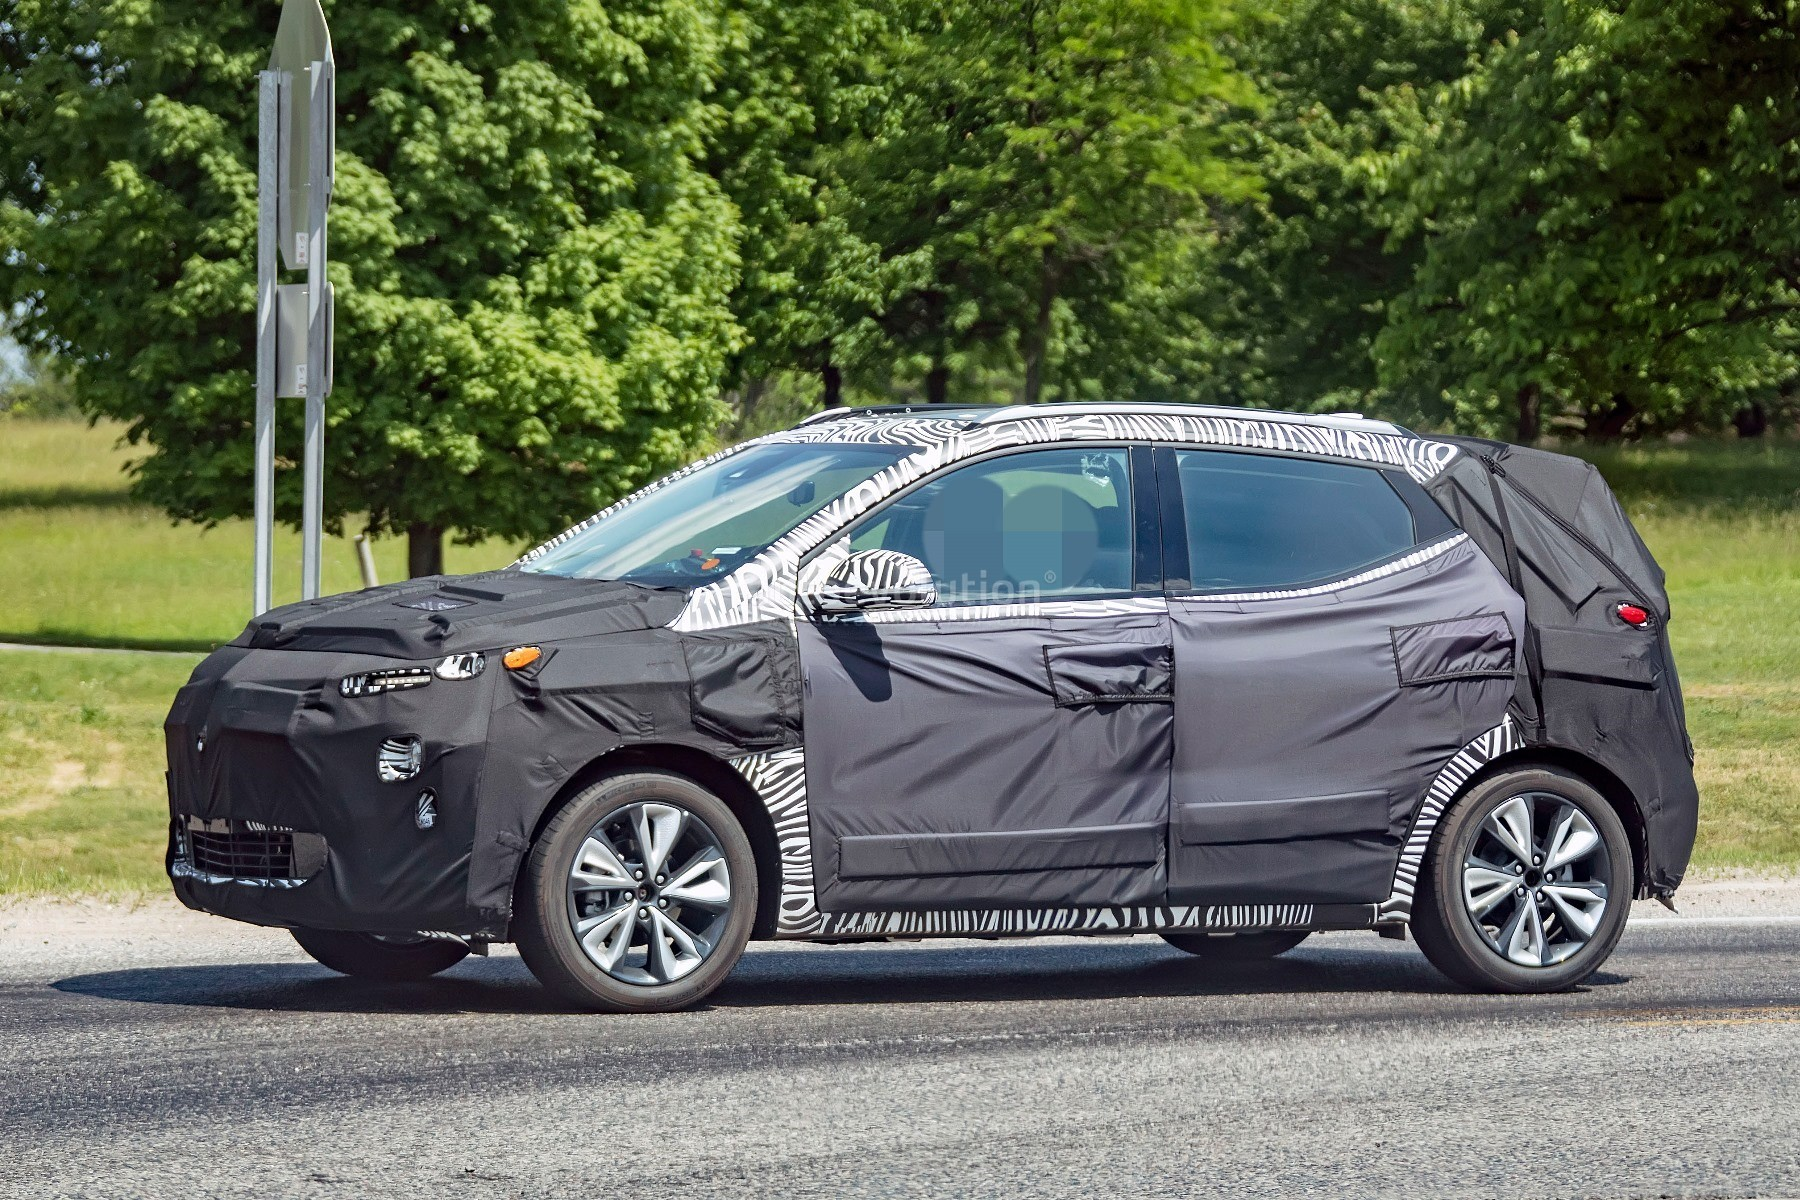 2022 Chevrolet Bolt Euv Rendered With Buick Velite 7 Styling Autoevolution